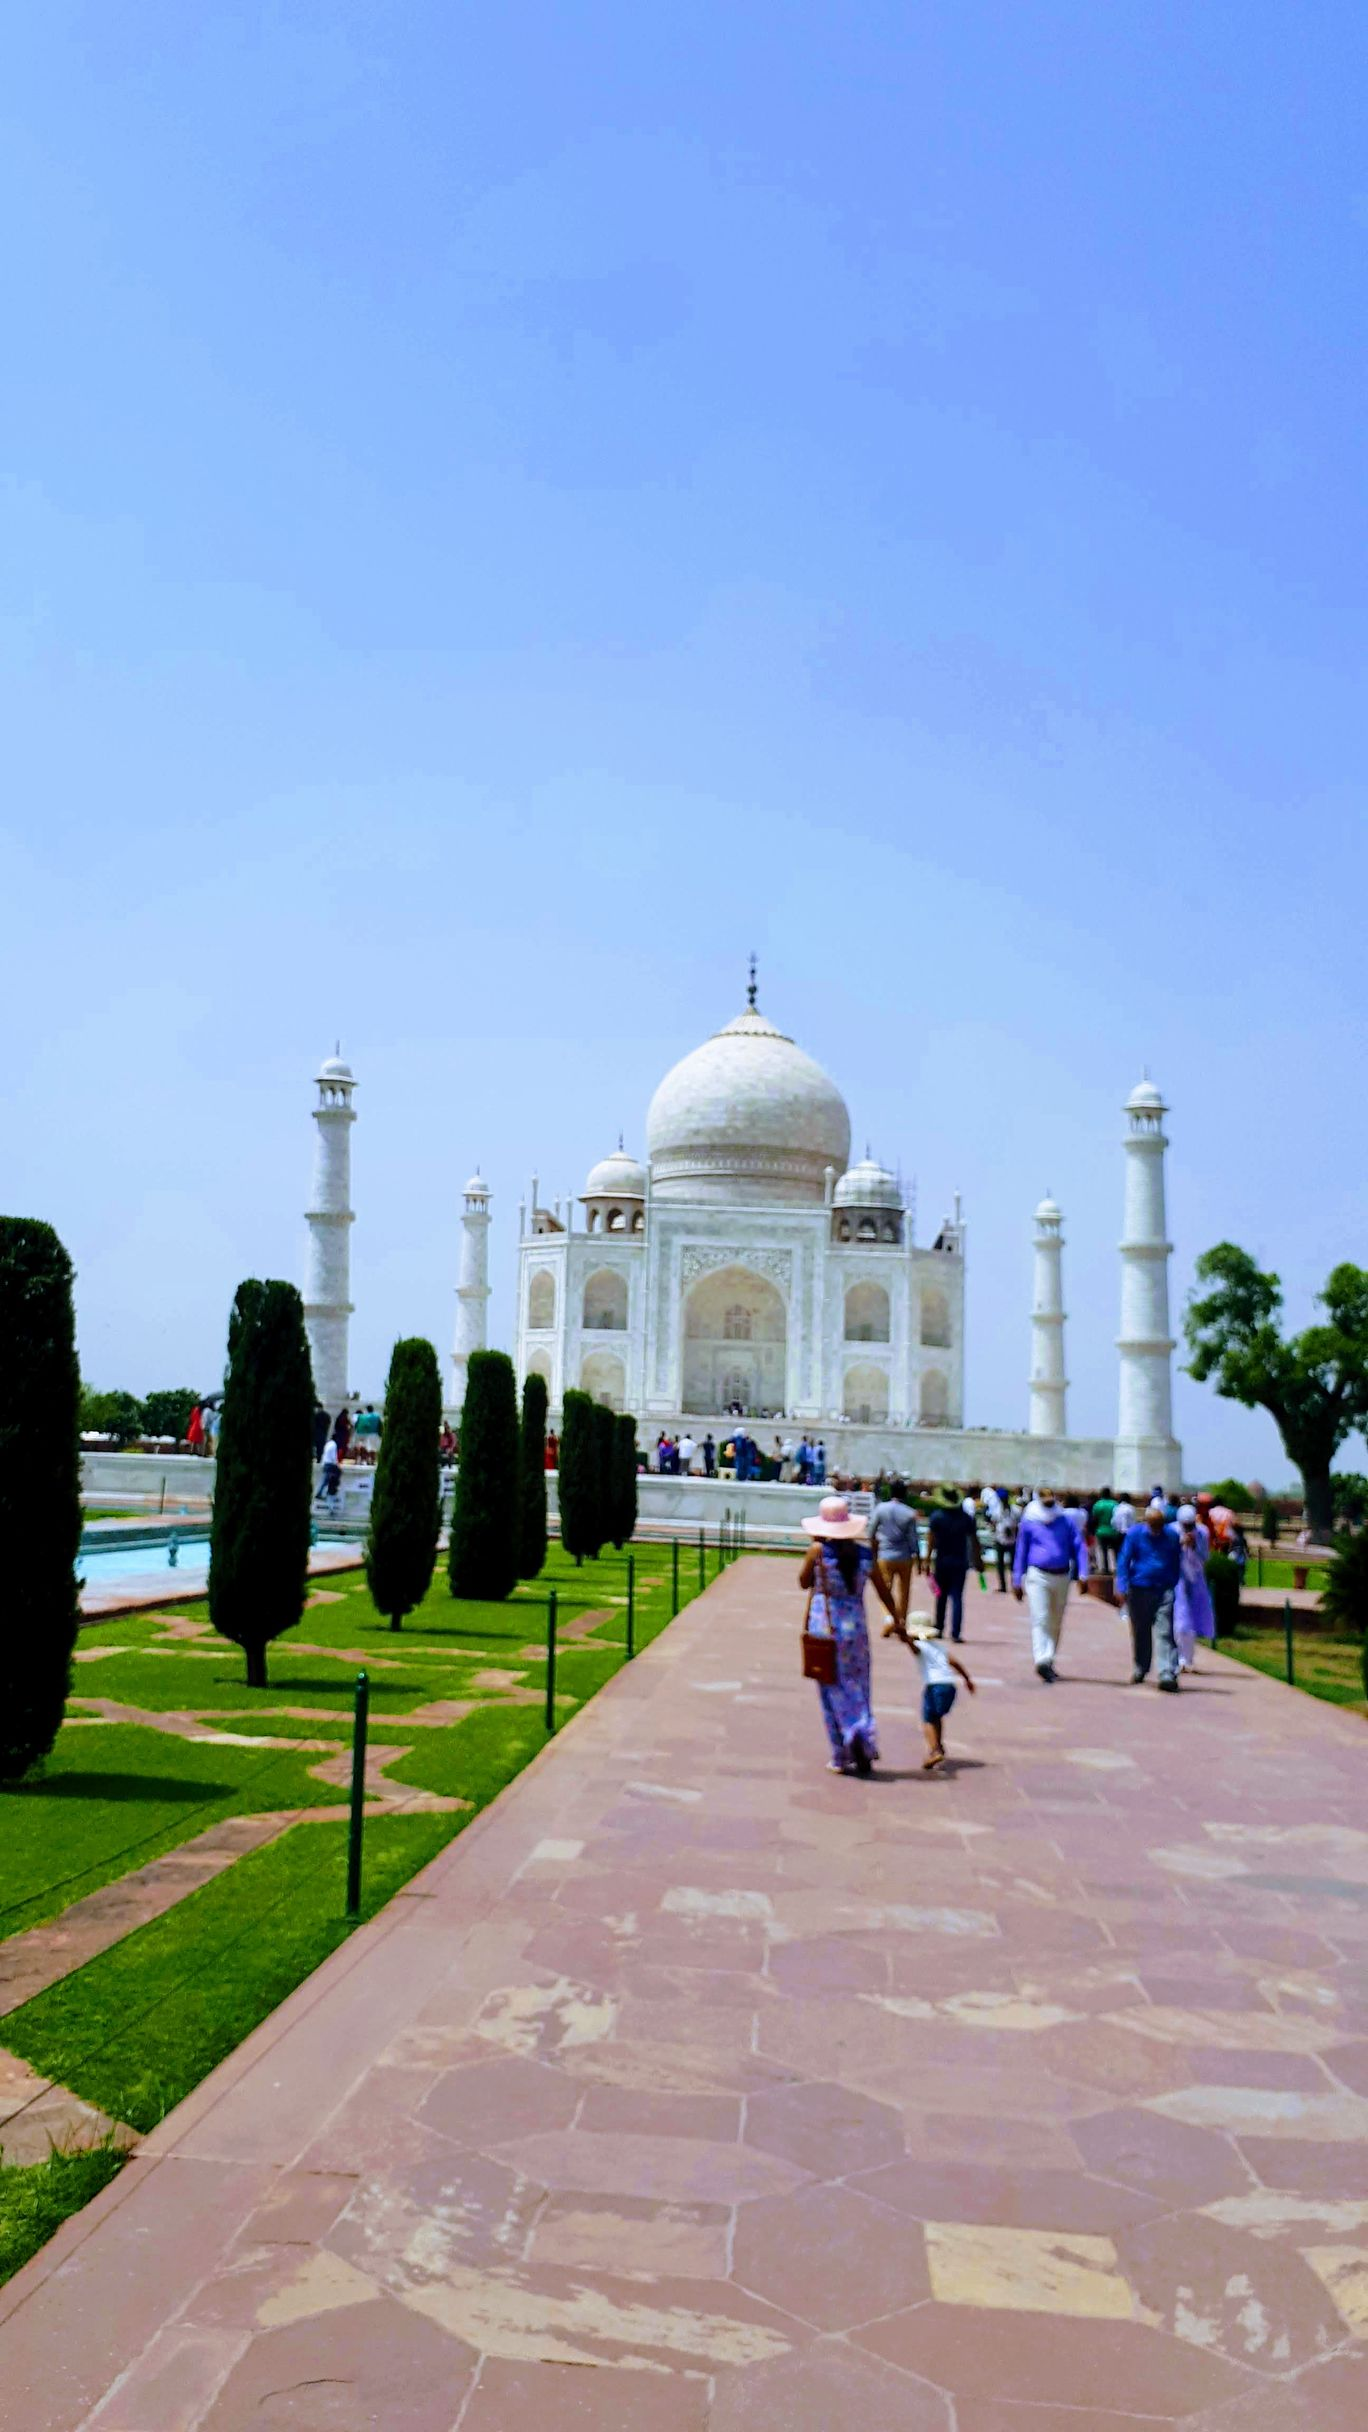 Photo of Agra By Shashidharreddy Gutha